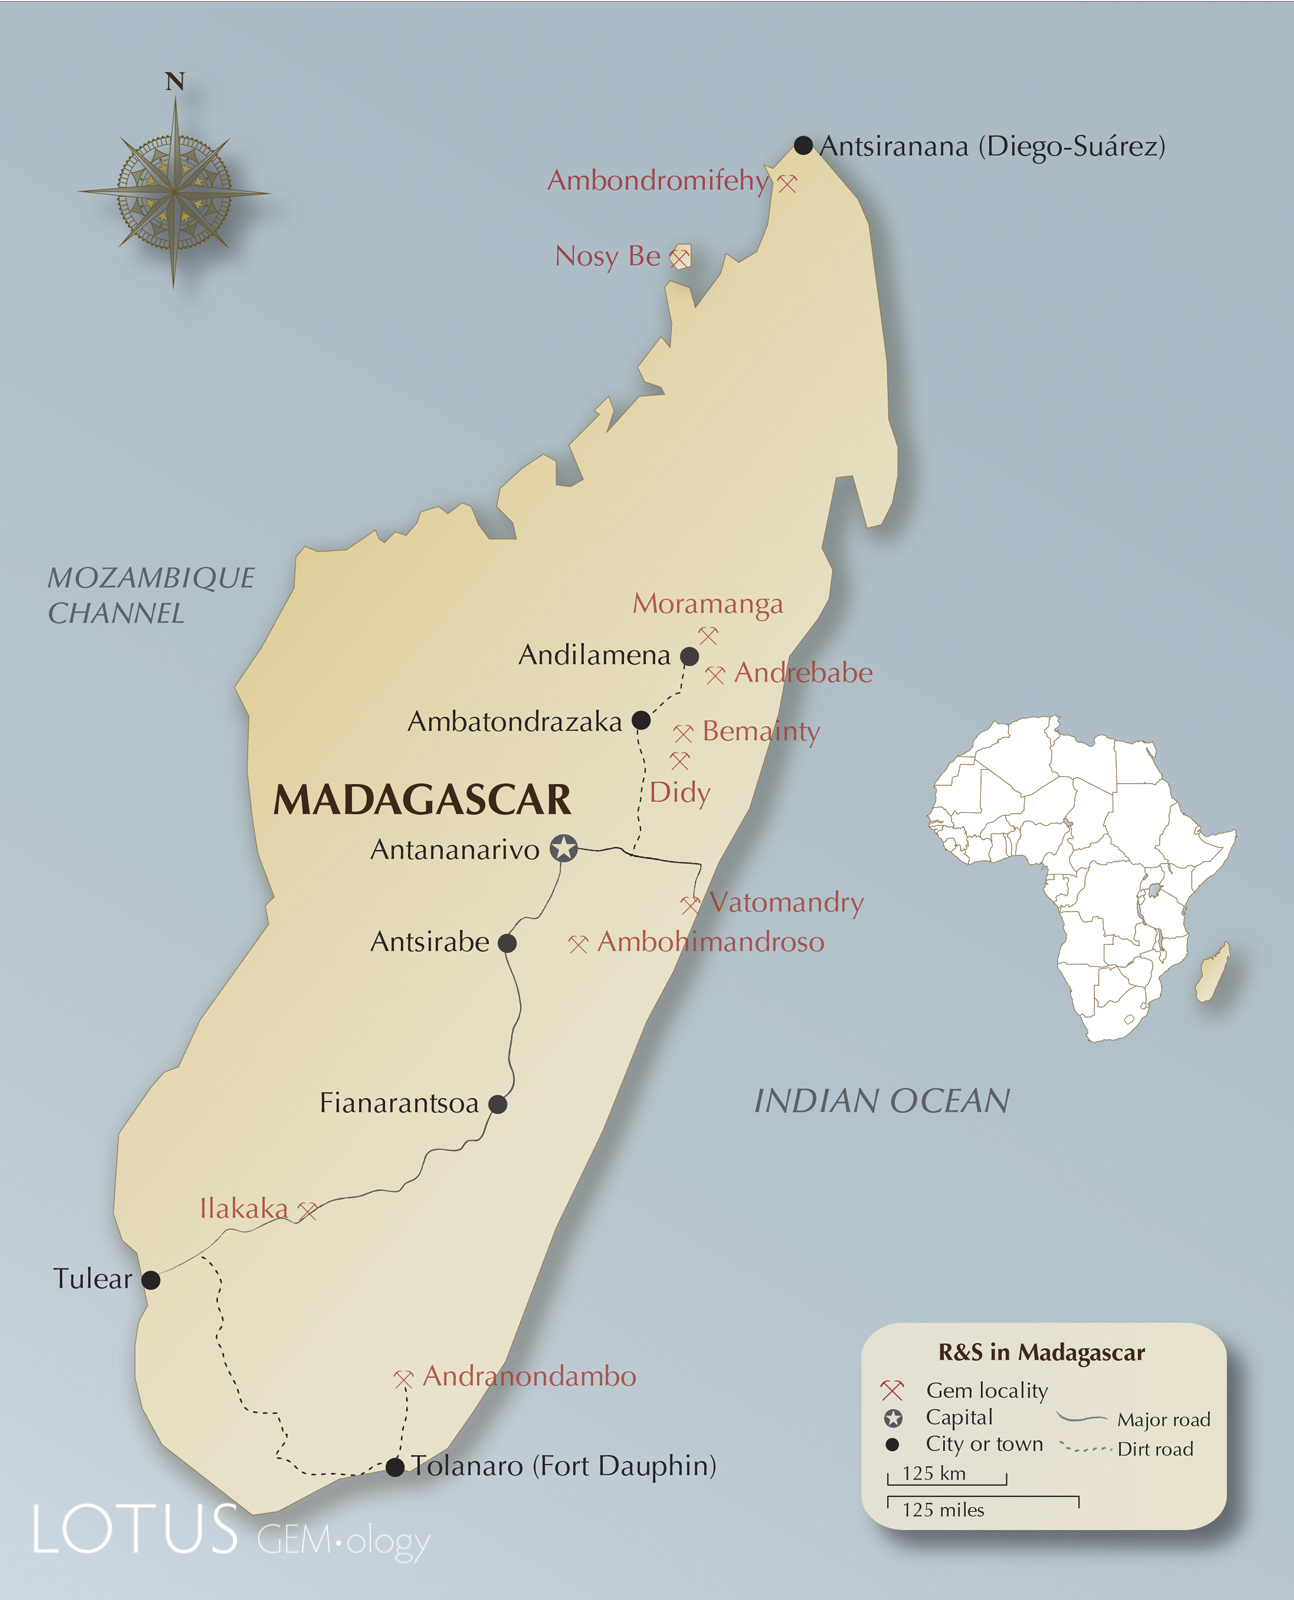 Map of Madagascar, showing the location of major ruby and sapphire mines and roads.